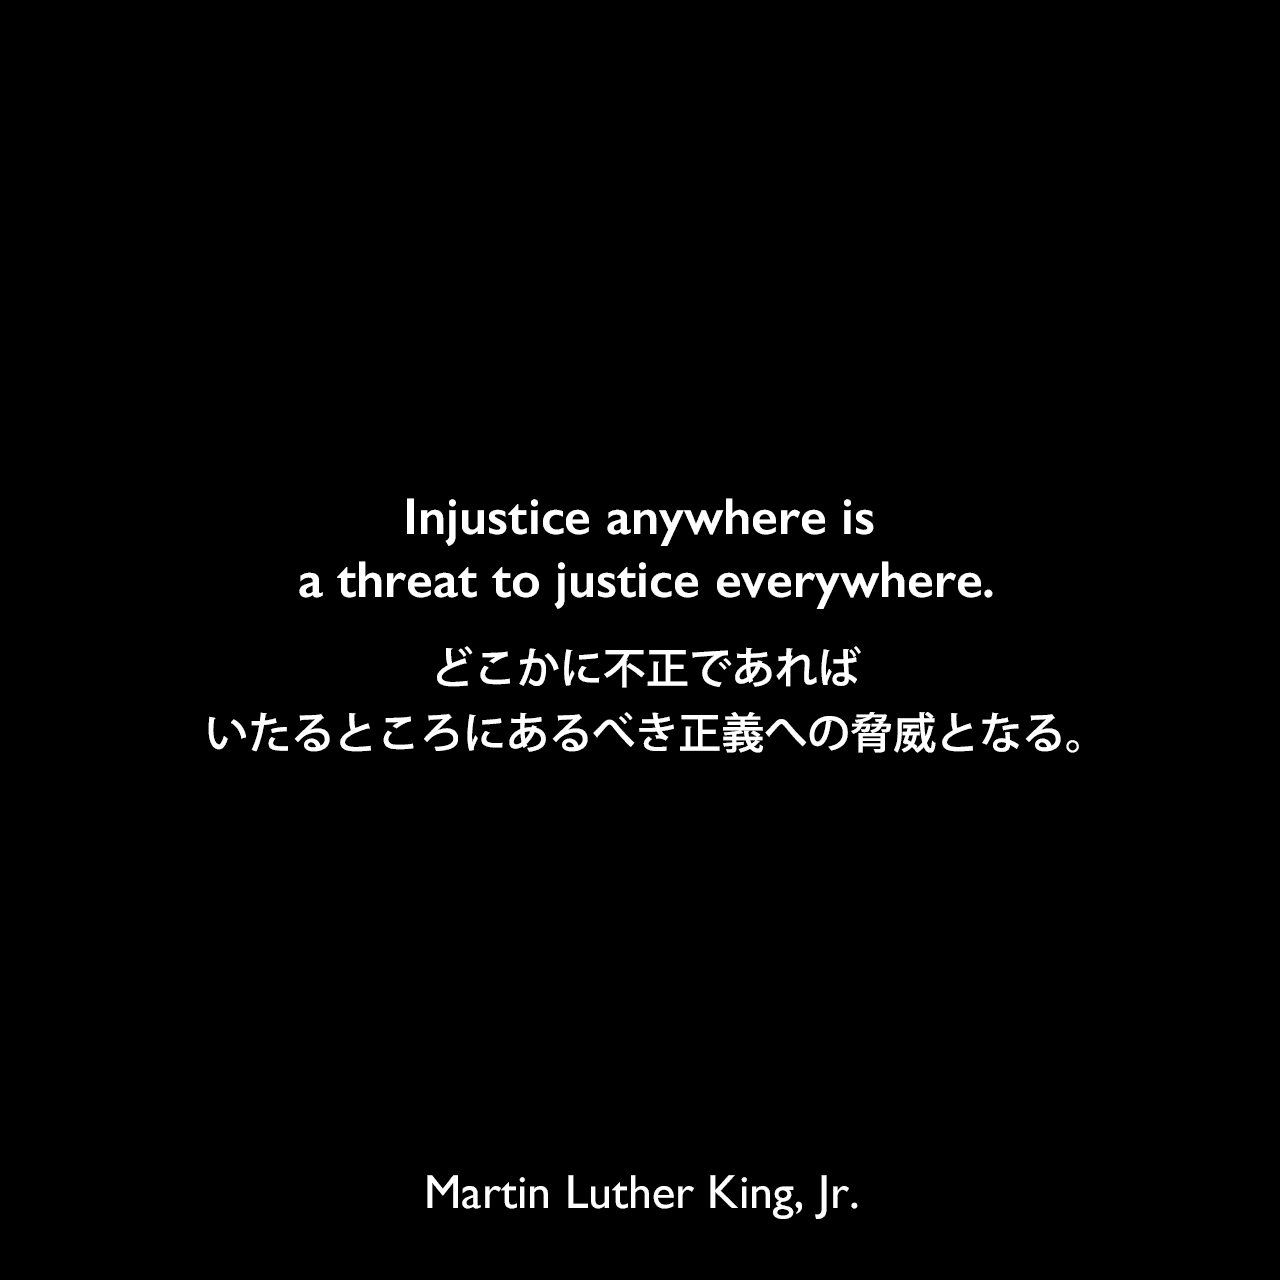 Injustice anywhere is a threat to justice everywhere.どこかに不正であれば、いたるところにあるべき正義への脅威となる。- 1960年の演説「The Rising Tide of Racial Consciousnes」よりMartin Luther King, Jr.